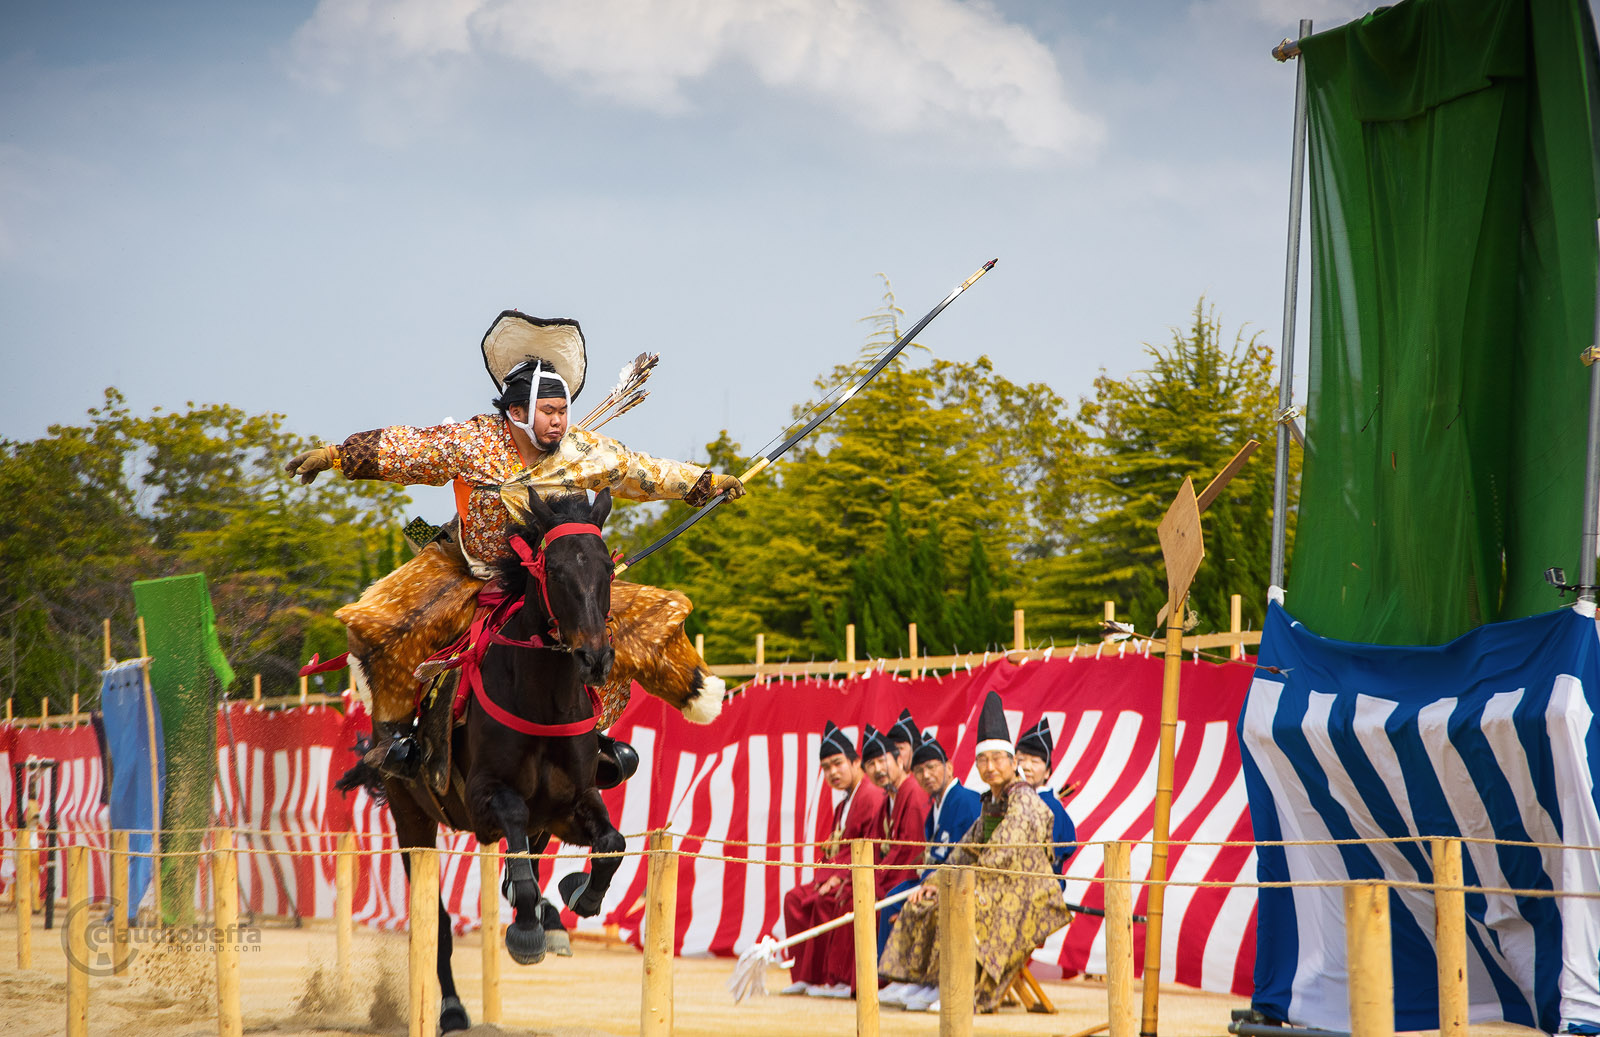 Japan, Yabusame, Traditional mounted archery, archer hits the target